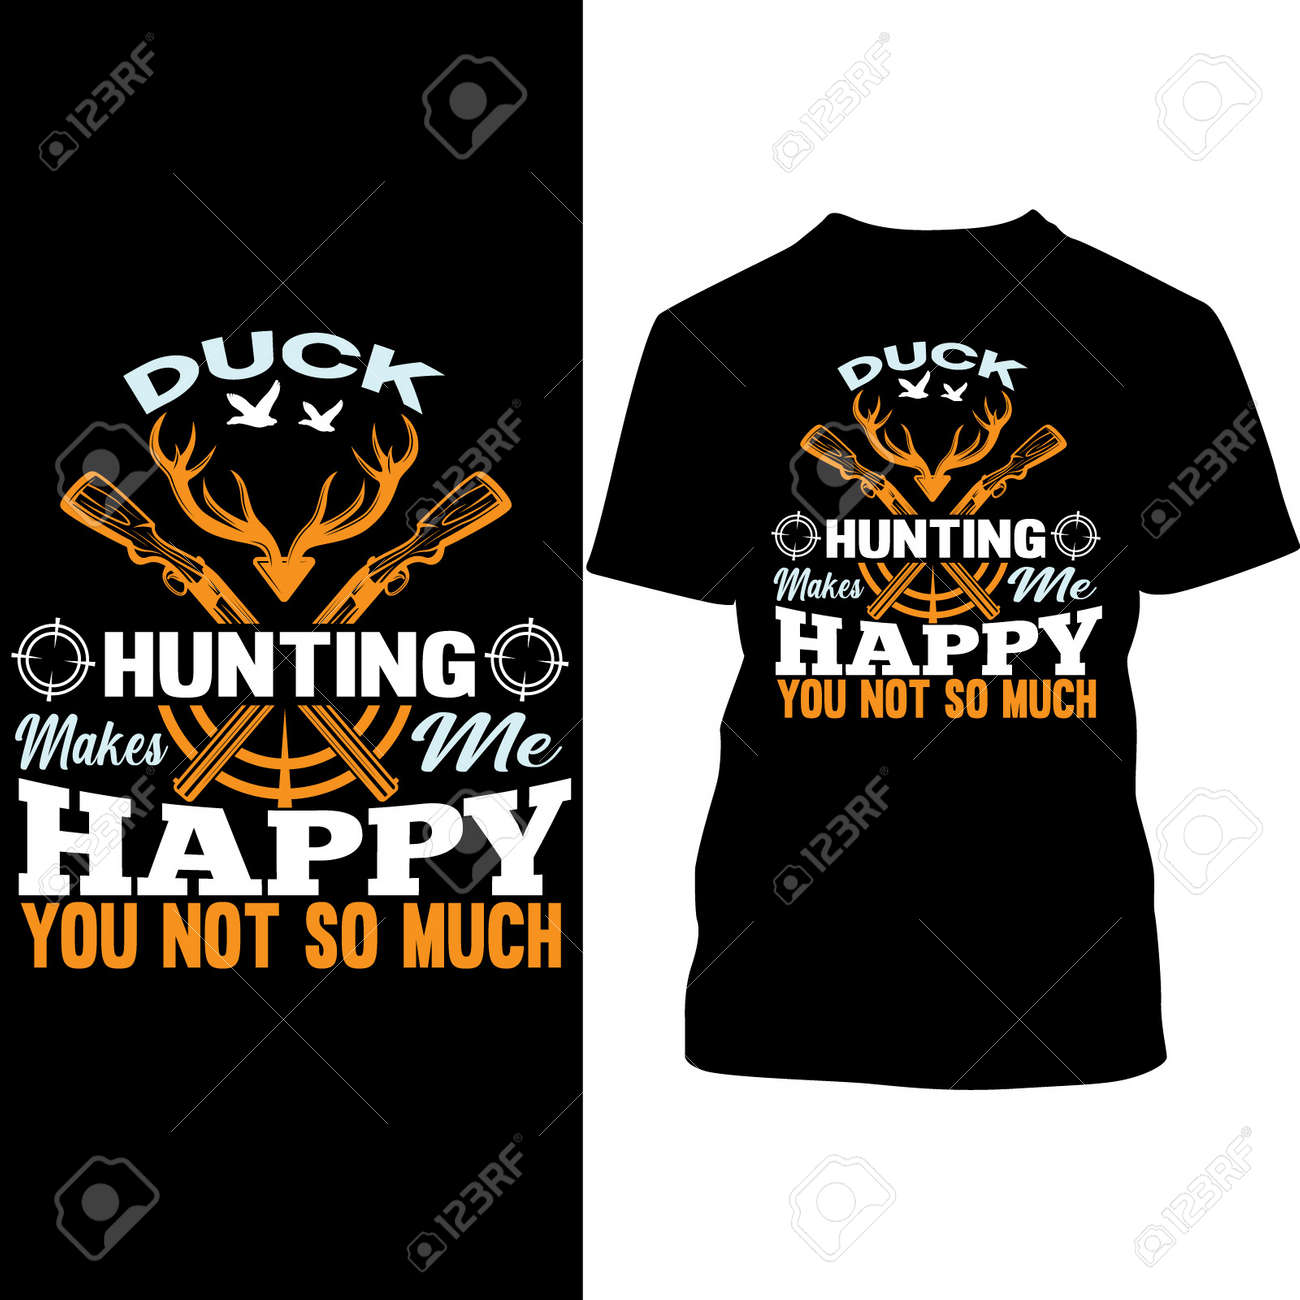 Duck Hunting Makes Me Happy You Not So Much, Hunting Gift - 164299965